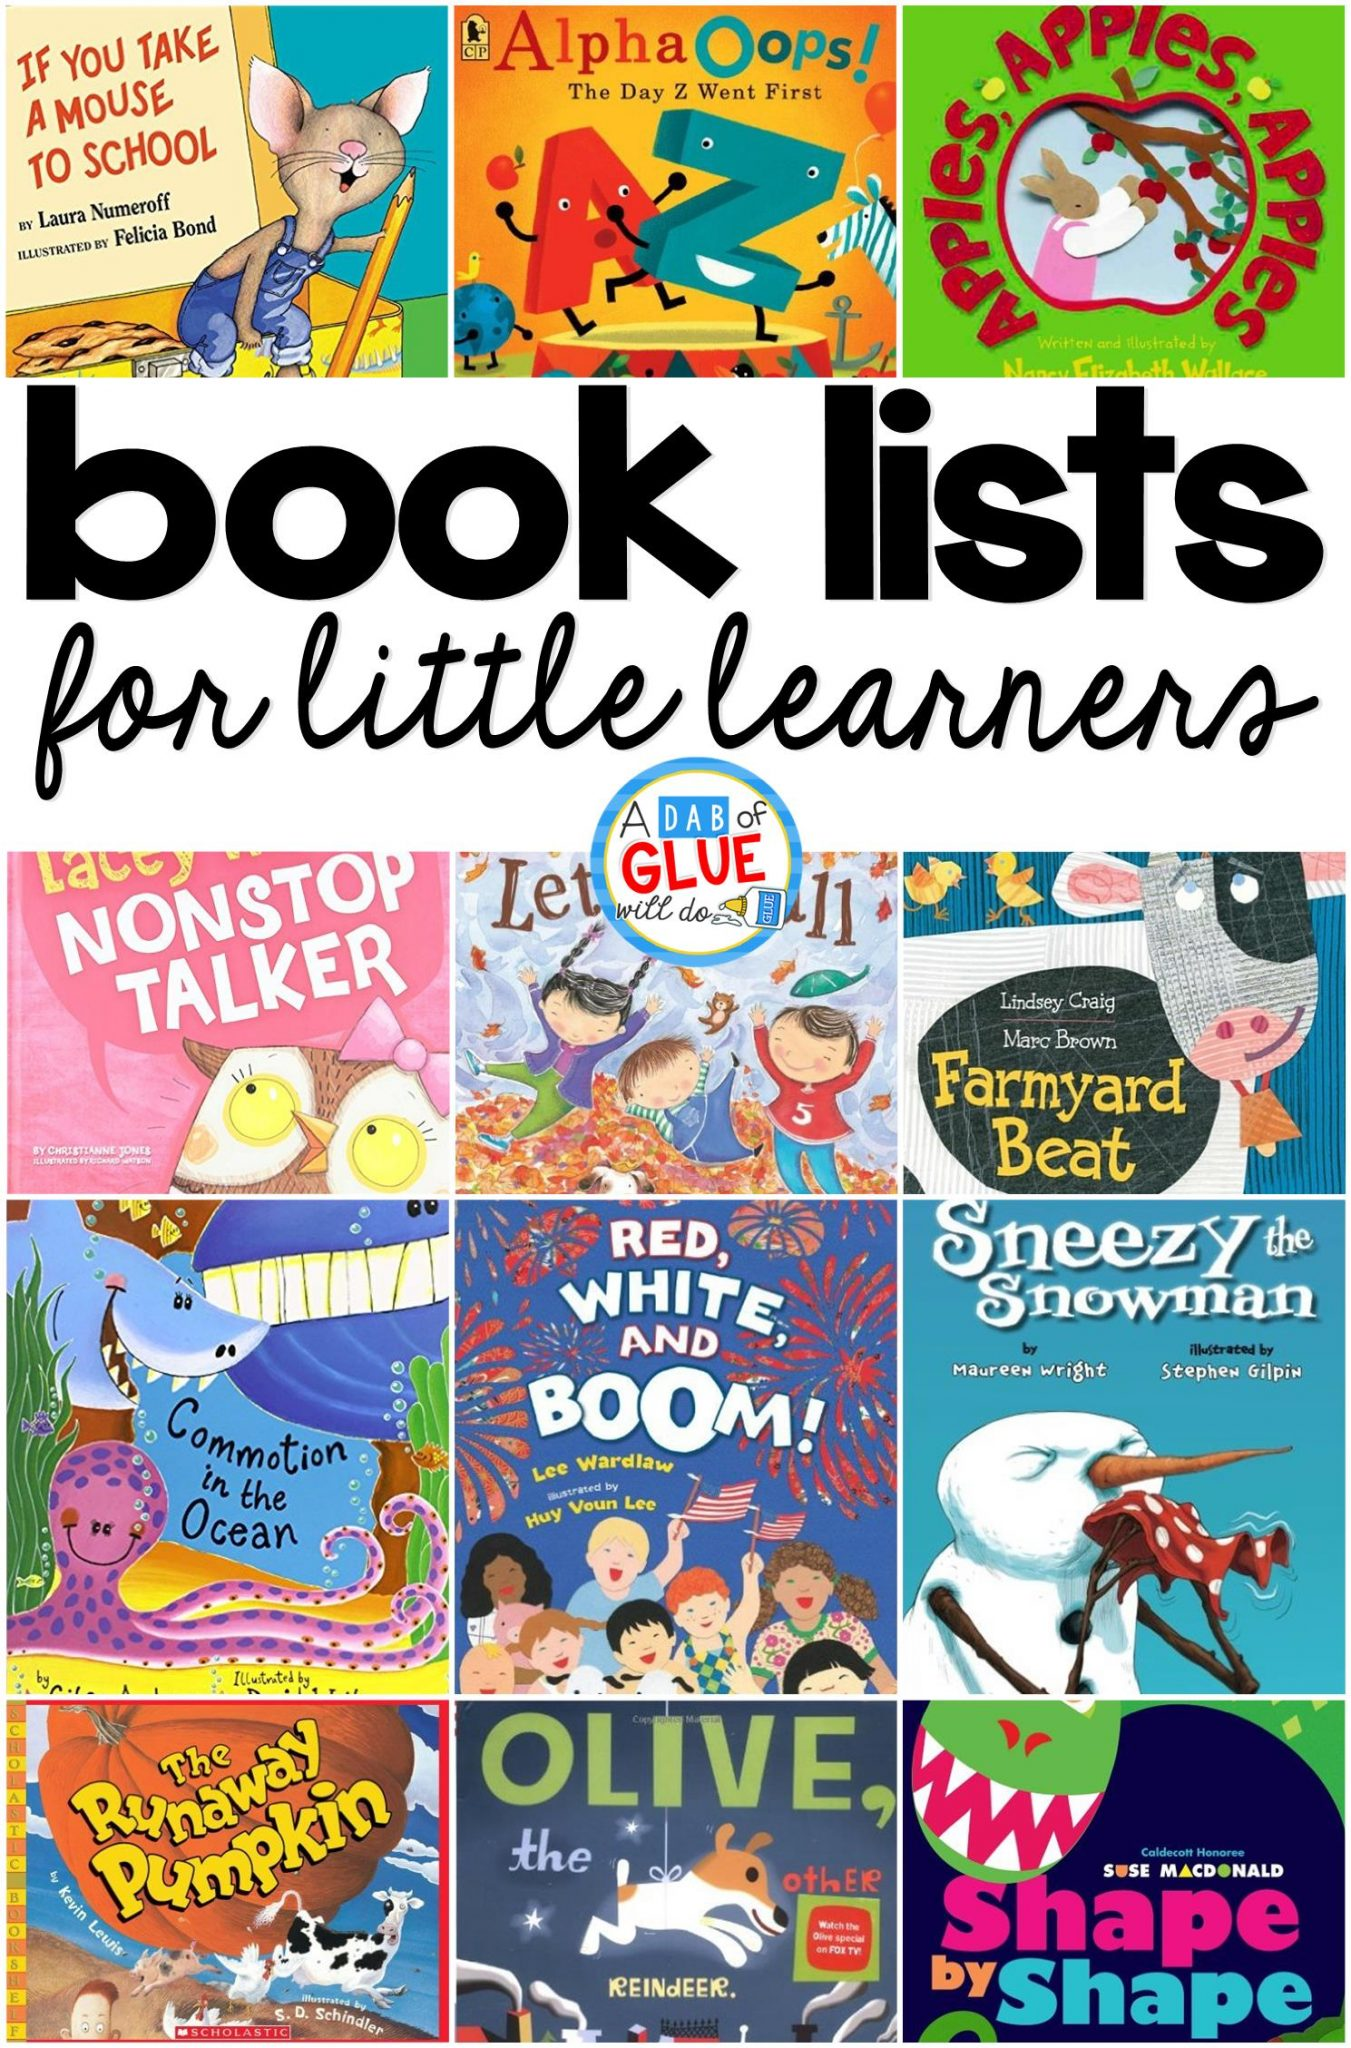 I absolutely love books and I love even more using them to help teach my students (and children) about the world we live in. It seriously makes my teacher heart so happy that my kids enjoy reading as much as I do. I wanted to start this page to share with you my favorite books. Each list will provide you with my favorite 12 books. Some of these lists will be thematic in nature, while others will be about a certain topic like rhyming or addition. I hope that you find these helpful in choosing books to use at home or in the classroom.